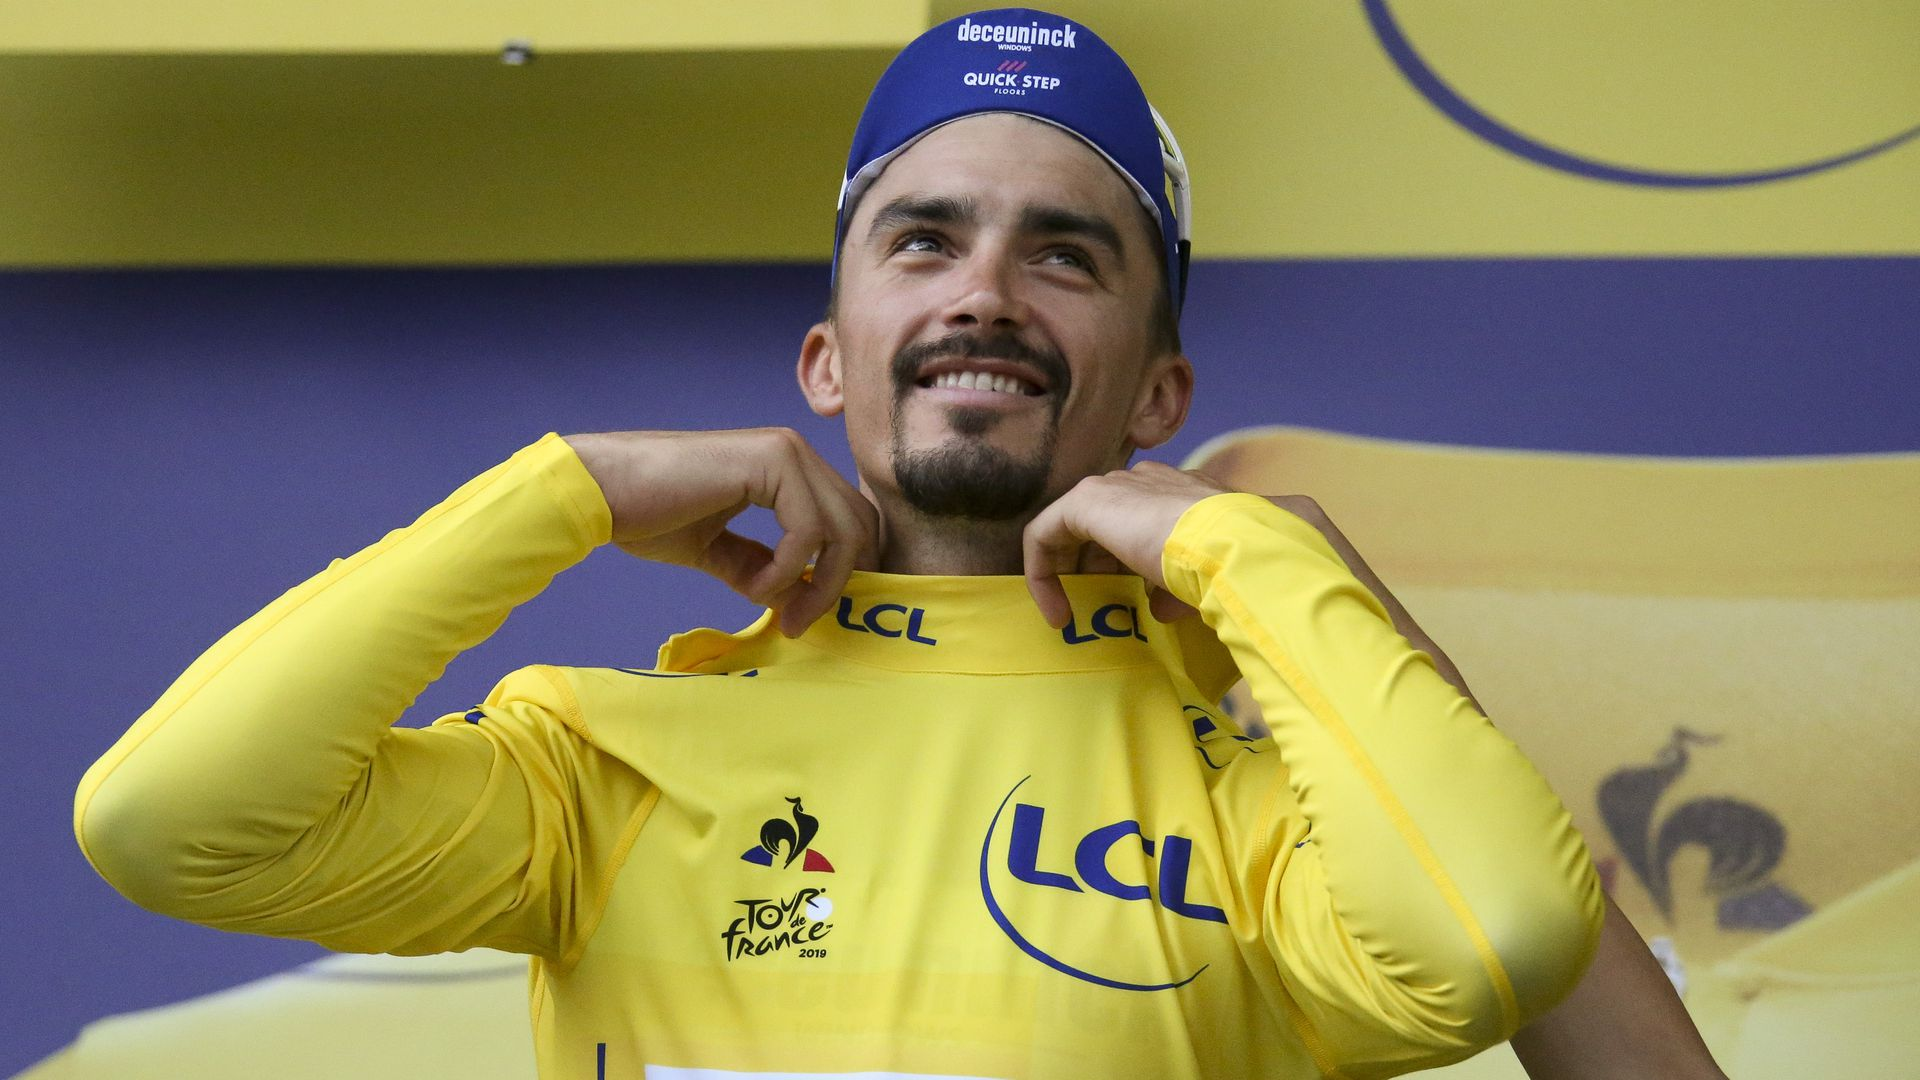 Julian Alaphilippe after Stage 18